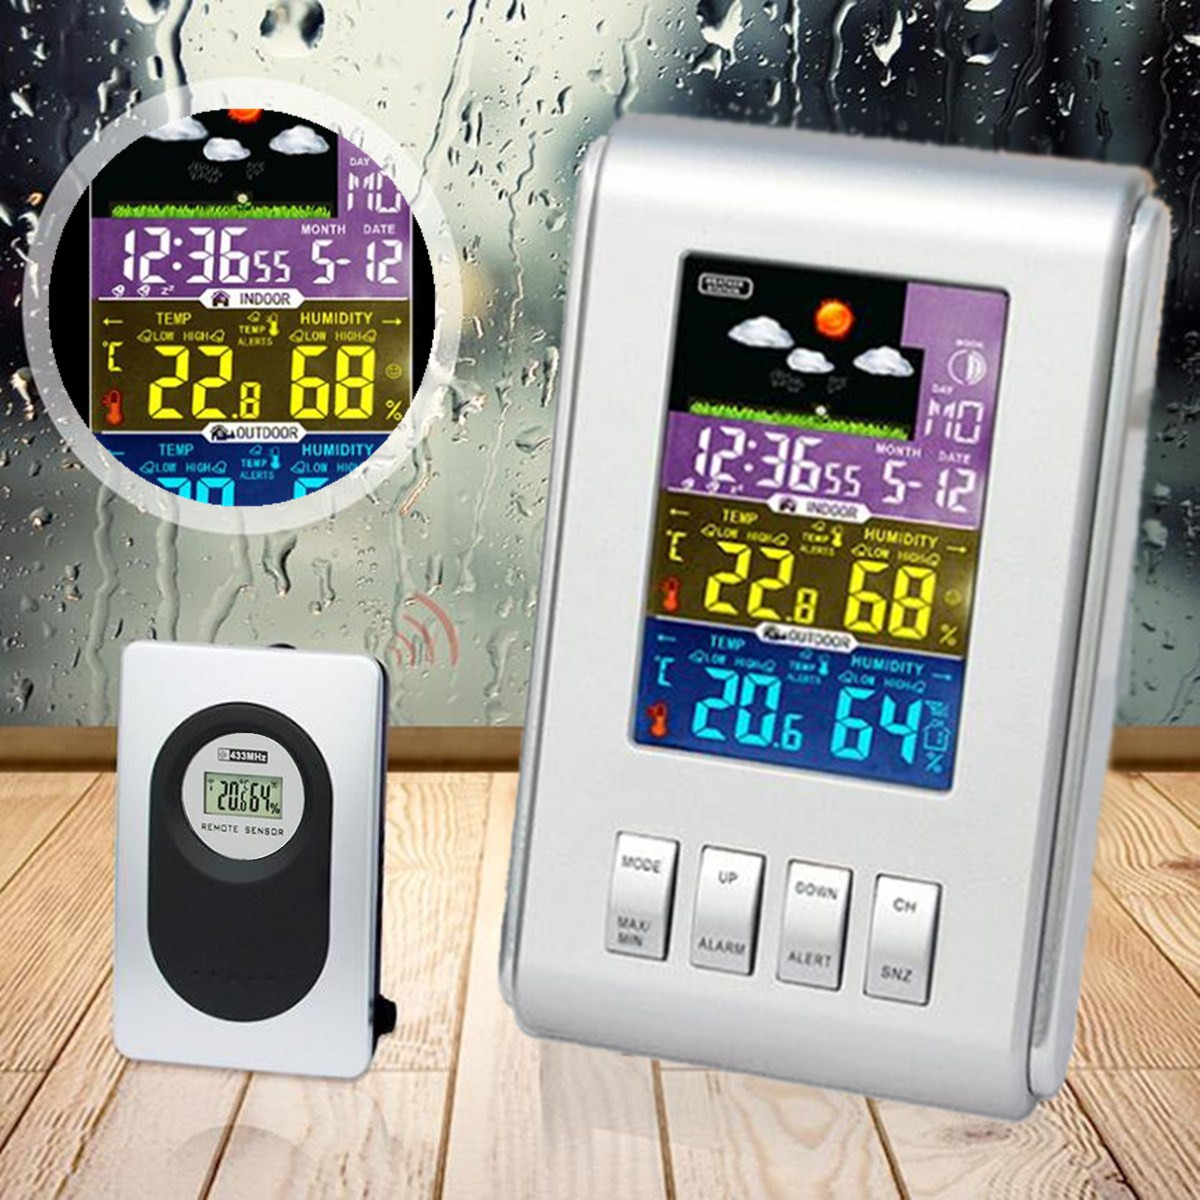 H103G Color Wireless LCD Clock Indoor Outdoor Weather Station Temperature Humidity Meter Sensor Hygrometer Digital Thermometer wireless weather station digital color lcd thermometer forecaster clock indoor outdoor humidity meter with remote sensor 50% off